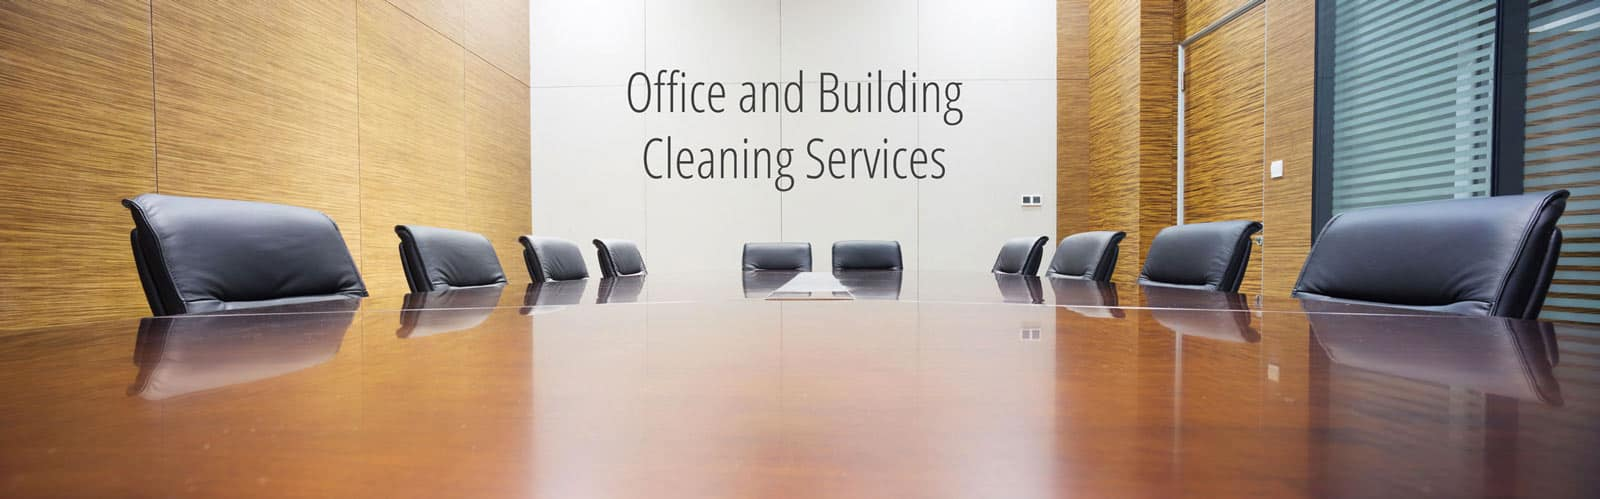 how to start a medical office cleaning business